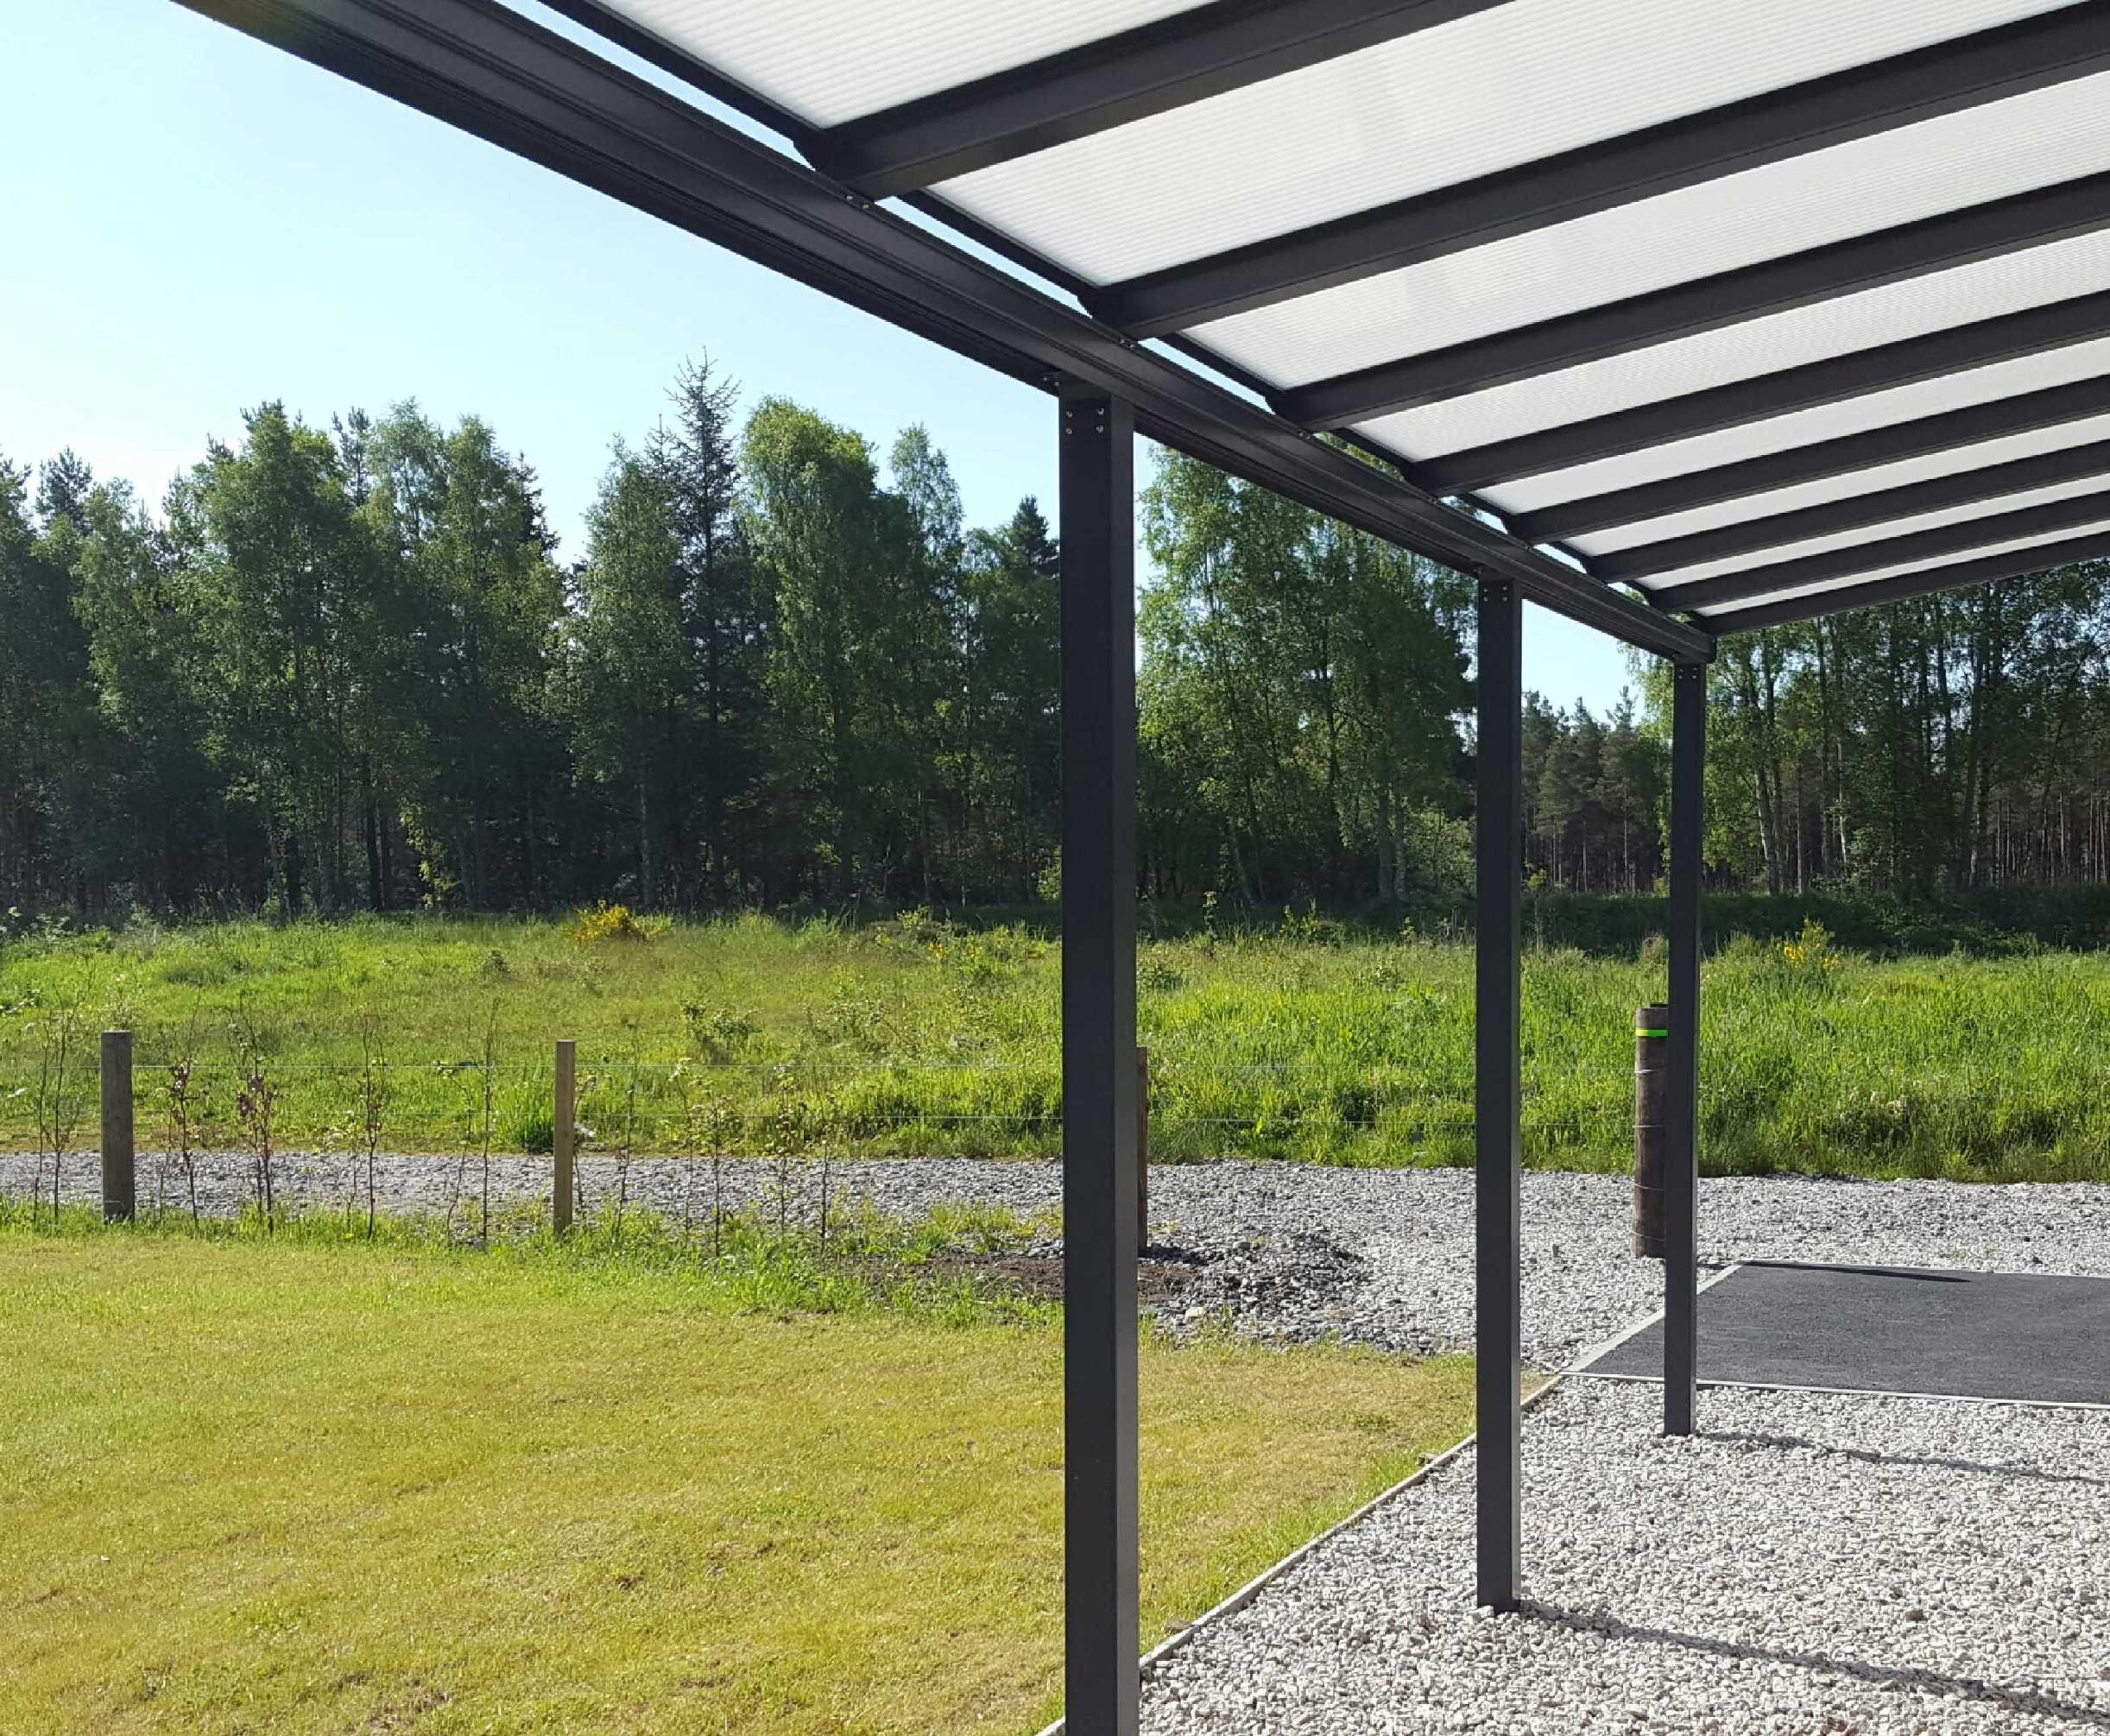 Omega Smart Lean-To Canopy, Anthracite Grey, 6mm Glass Clear Plate Polycarbonate Glazing - 10.5m (W) x 3.5m (P), (5) Supporting Posts